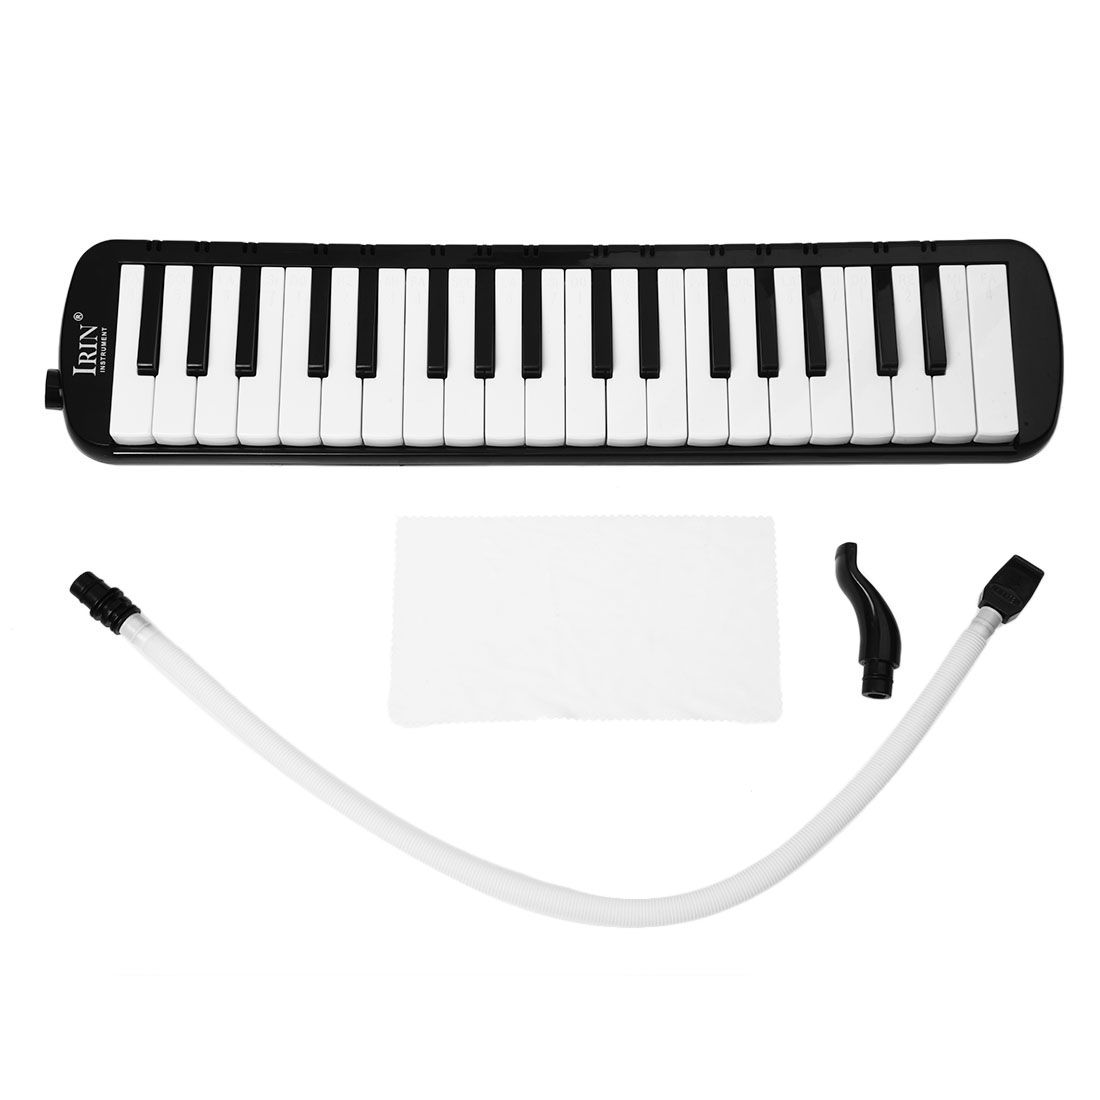 IRIN Black 37 Piano Keys Melodica Pianica Harmonica With Carrying Bag 6 Pcs/set For Students Beginners Music Instruments цена 2017